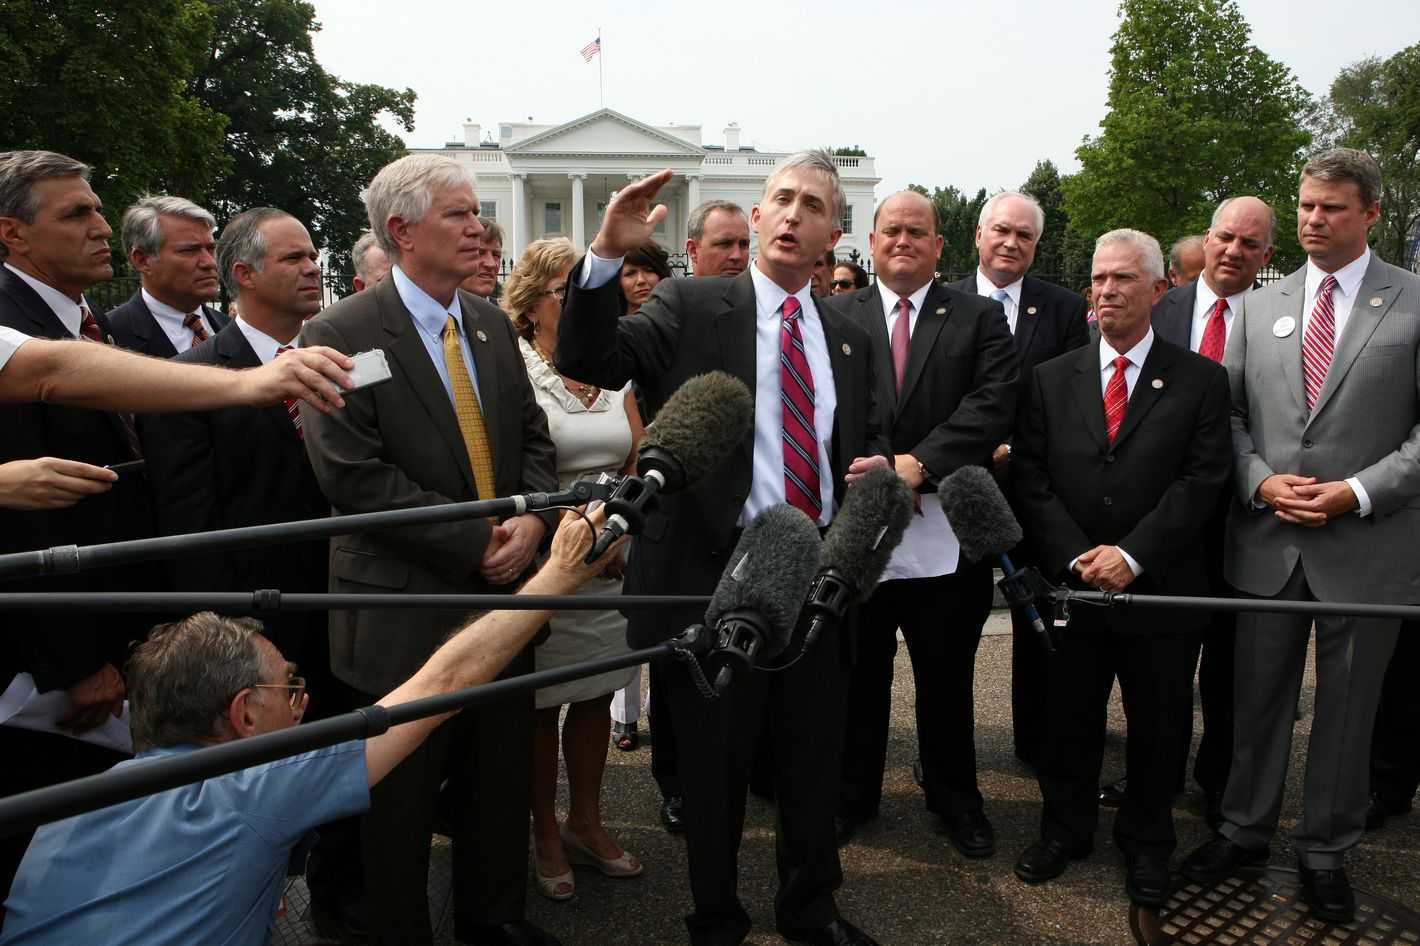 Representative Trey Gowdy (R-SC) addresses the media outside the White House to call attention to a letter that he and fellow Republican House members delivered to the White House calling on President Obama to put his plan for raising the country's debt ceiling in writing, in Washington, Tuesday, July 19, 2011.